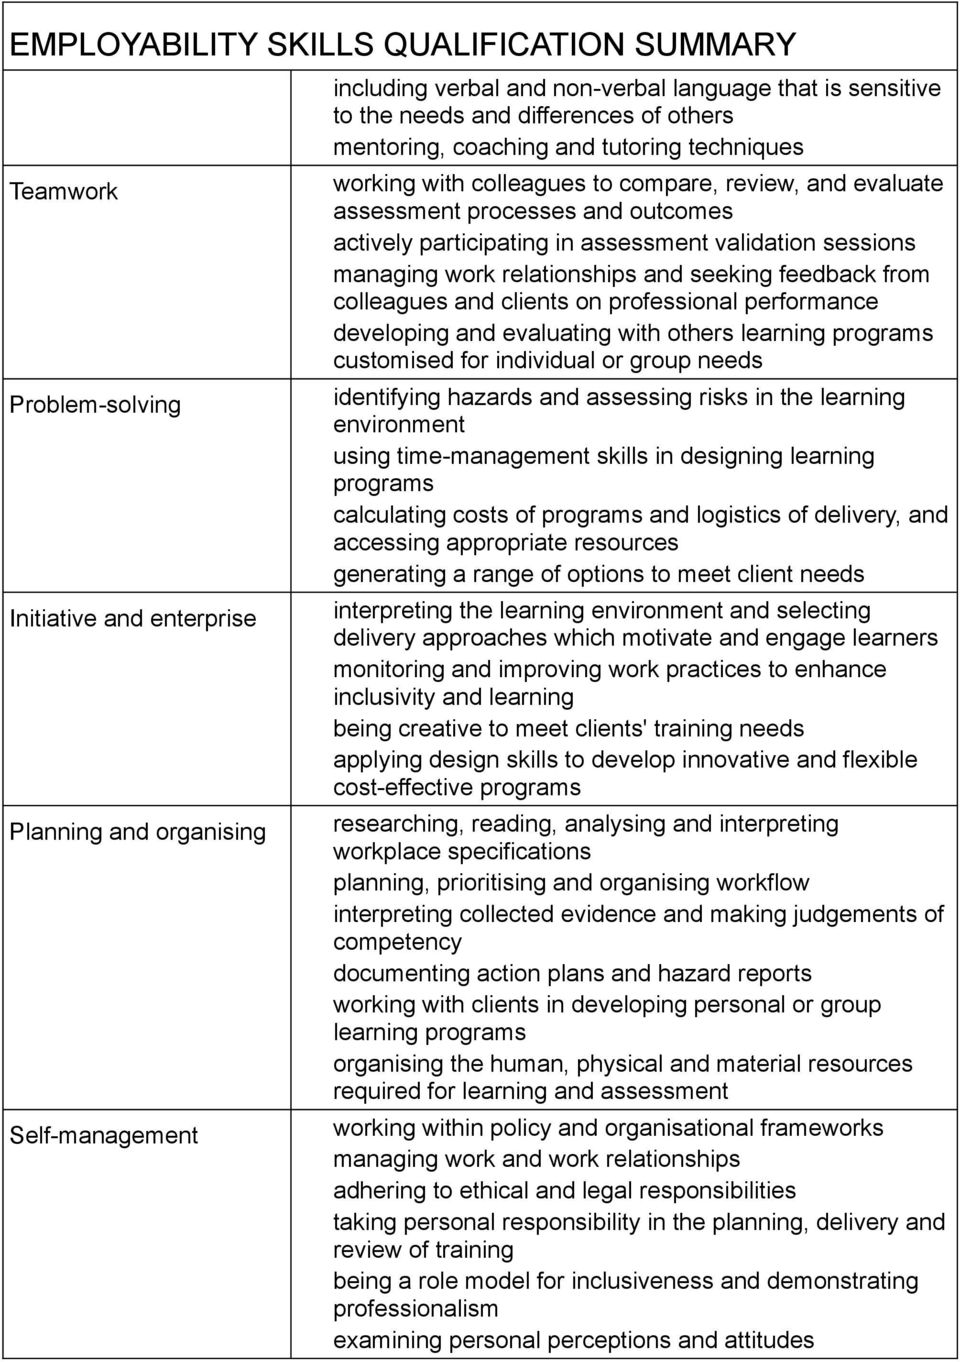 assessment validation sessions managing work relationships and seeking feedback from colleagues and clients on professional performance developing and evaluating with others learning programs